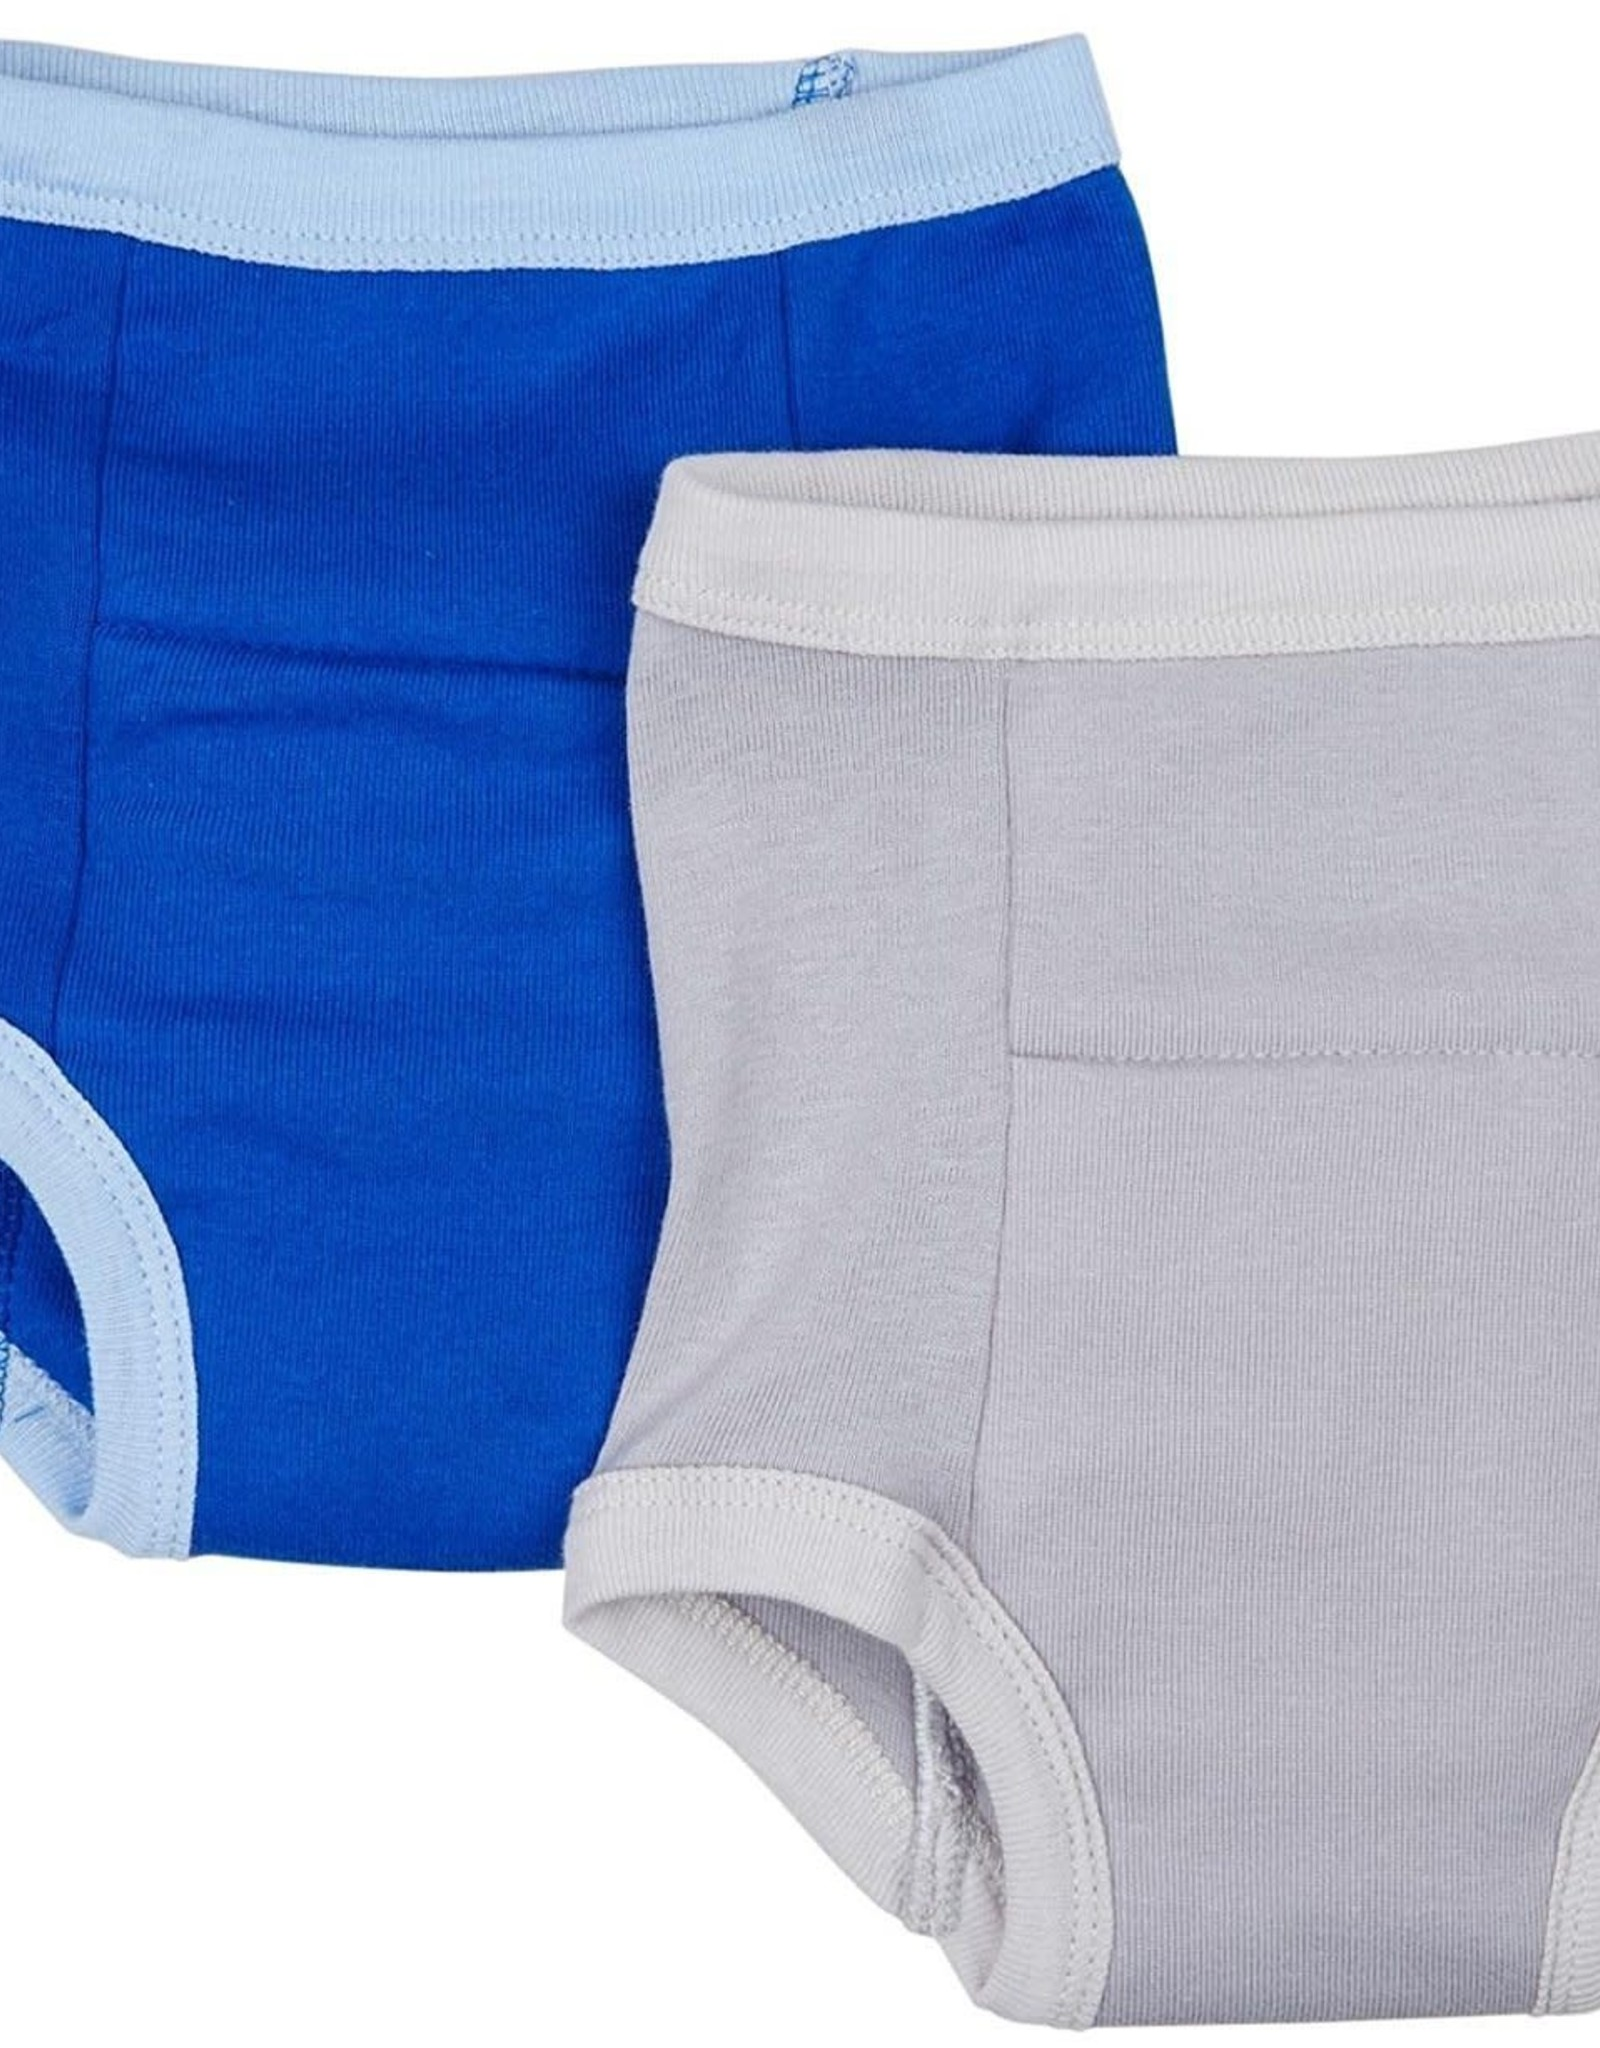 Iplay|Green Spouts i play - Reusable Absorbent Training Underwear - 2 Pack